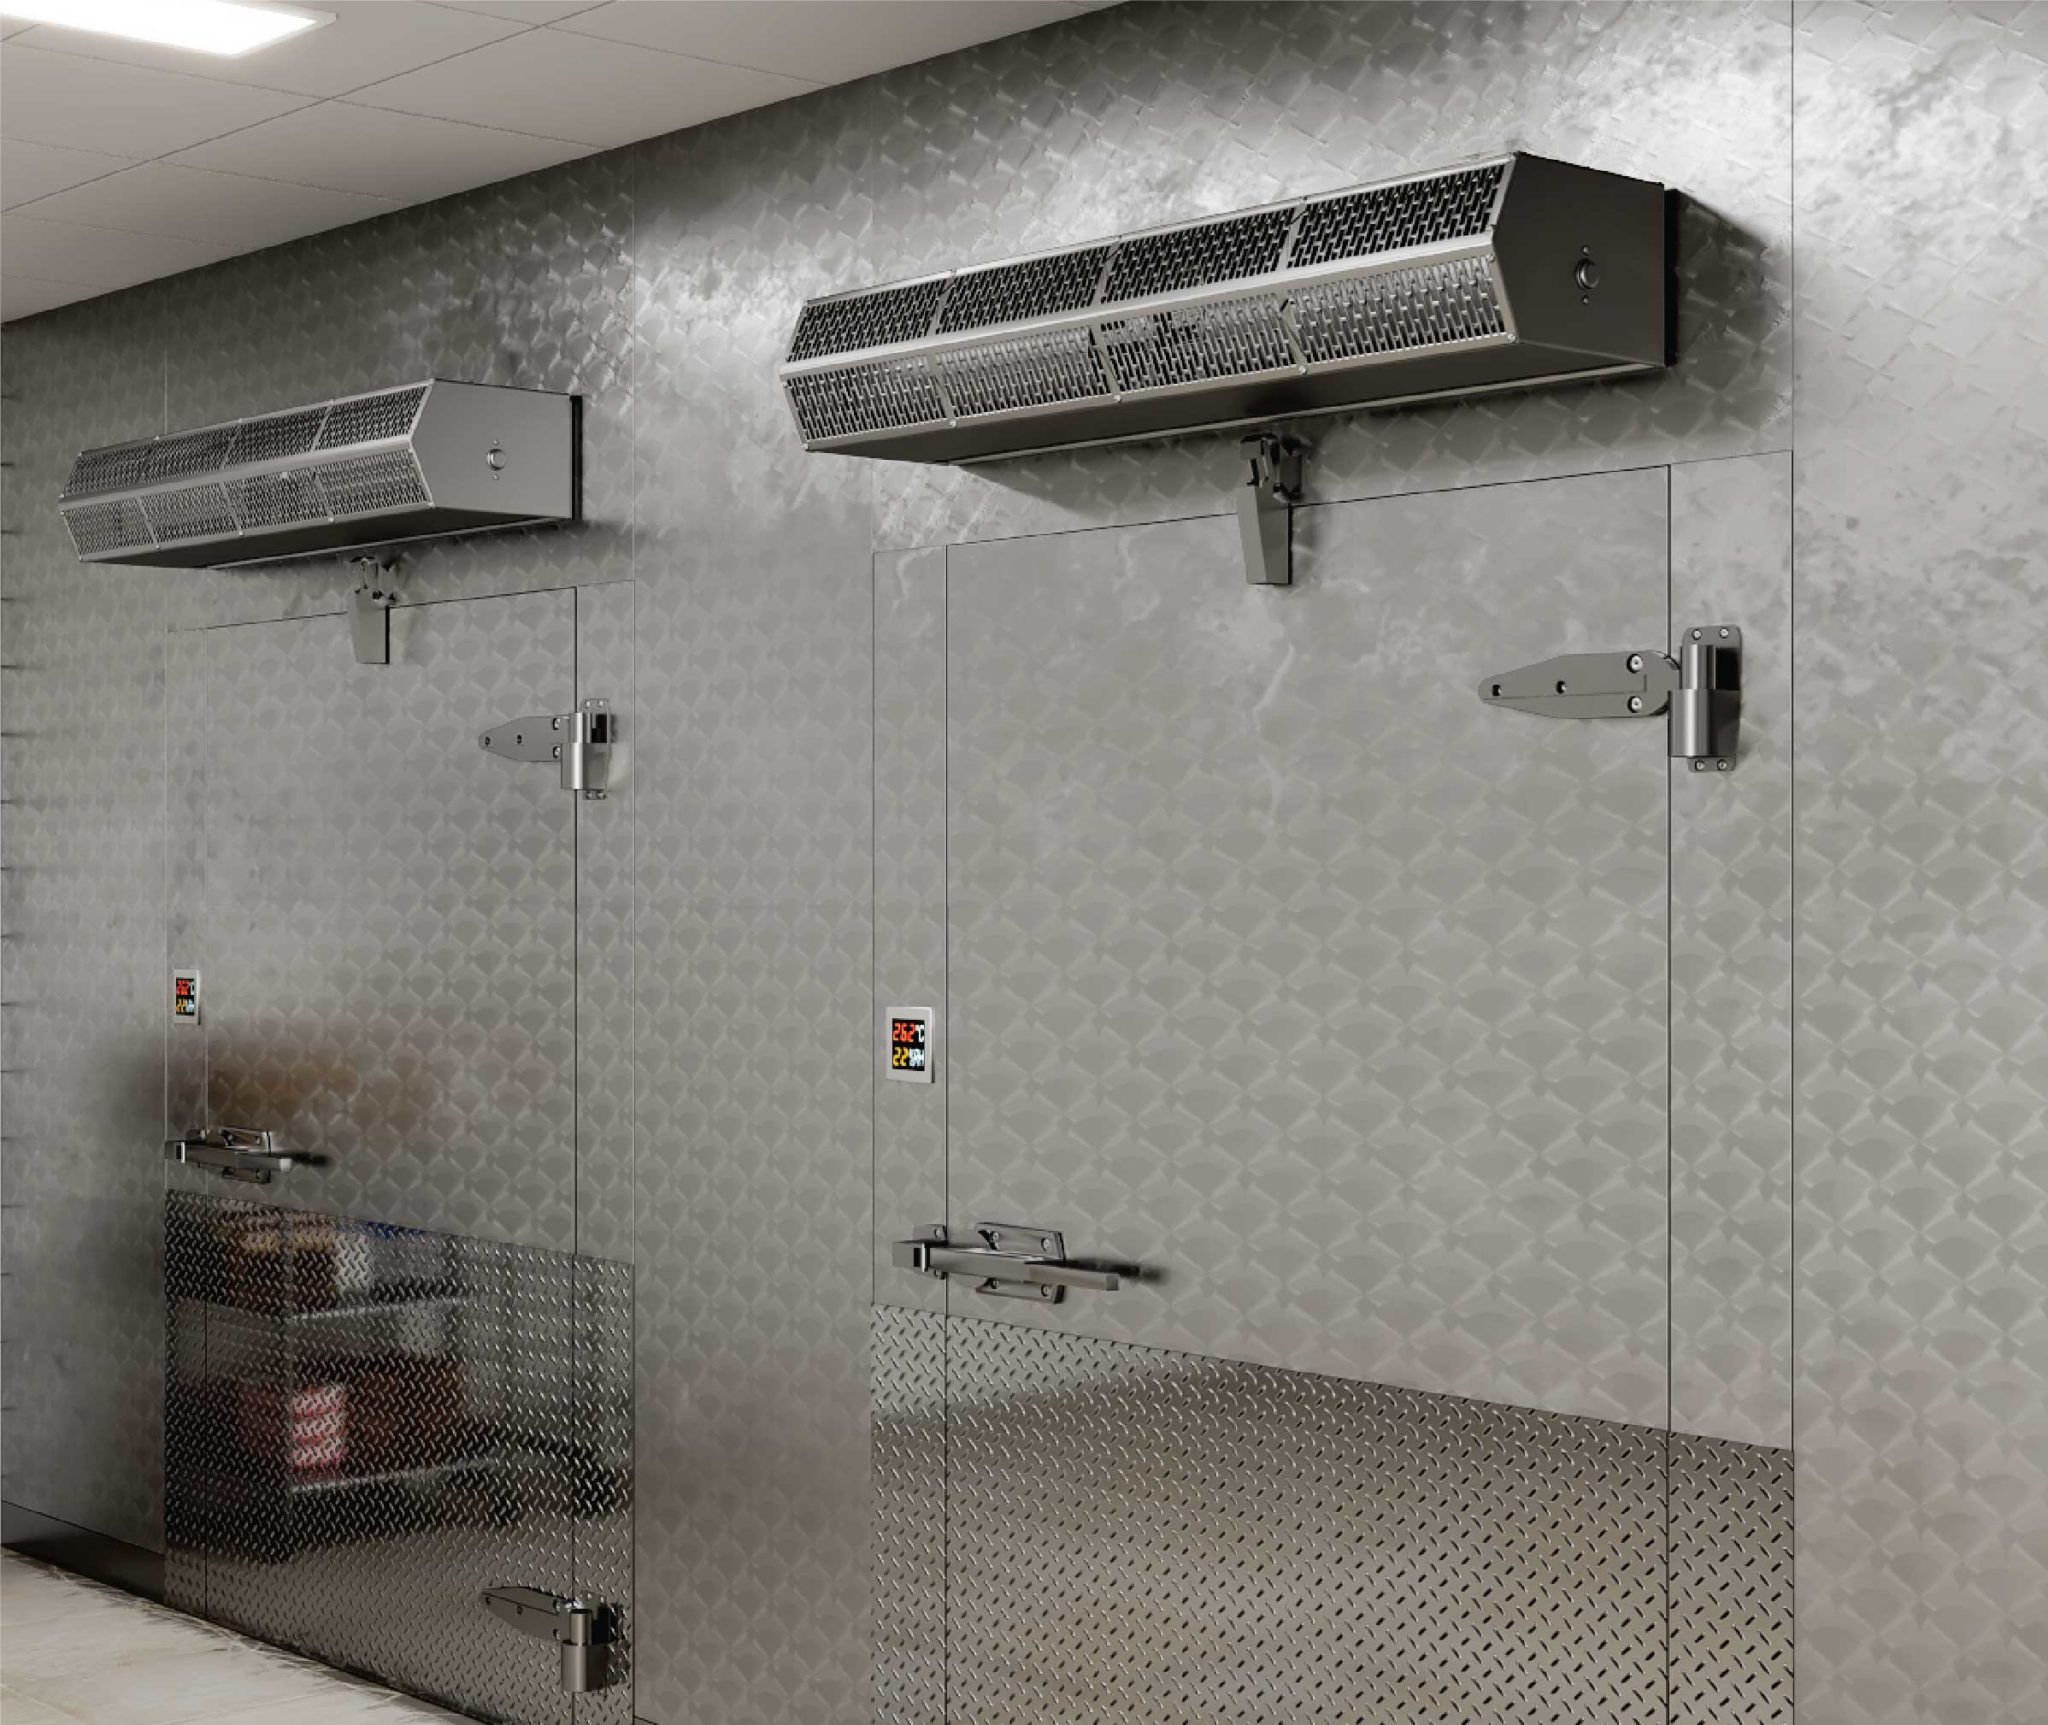 Berner air curtain over cafeteria walk-in cooler.